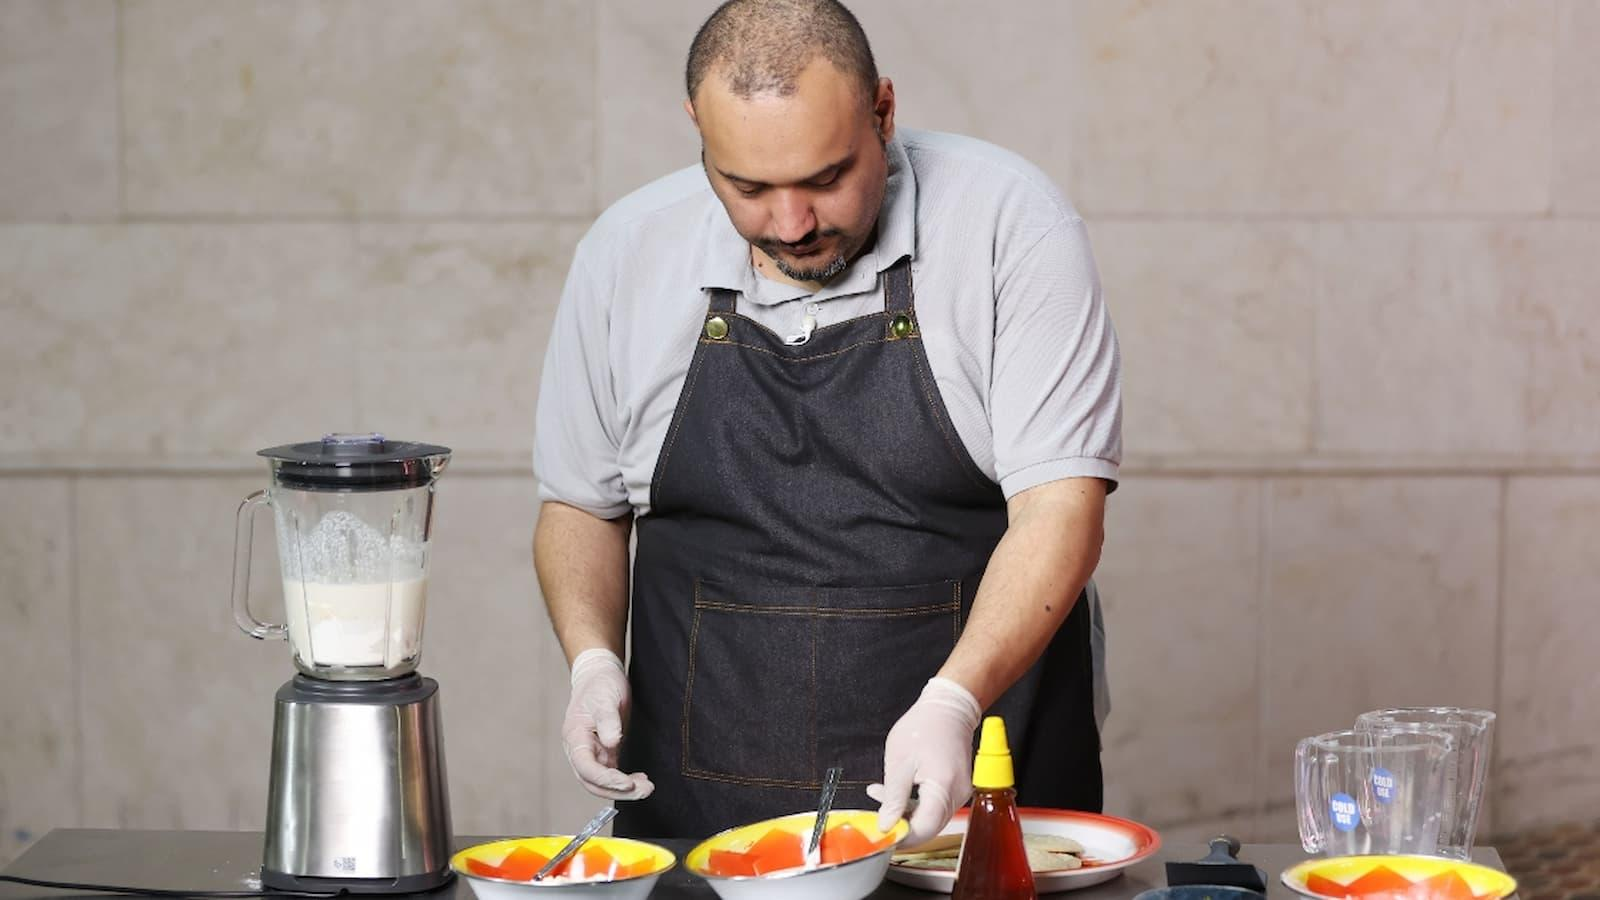 Great football and tasty food will welcome fans in 2022: Qatari chef